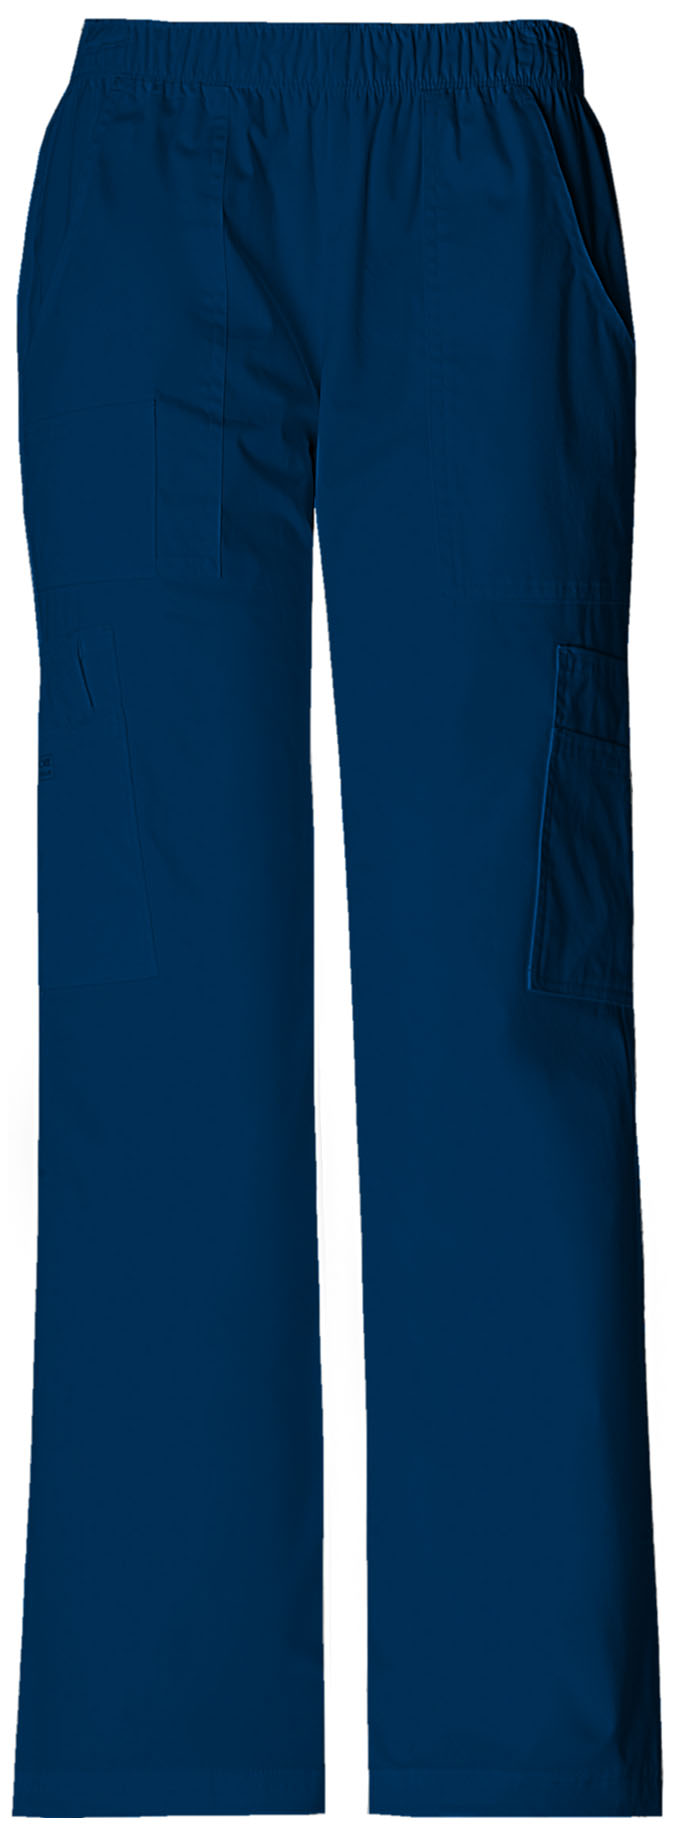 4c265baf4a2 Cherokee WW Core Stretch Mid Rise Pull-On Pant Cargo Pant – Mates ...